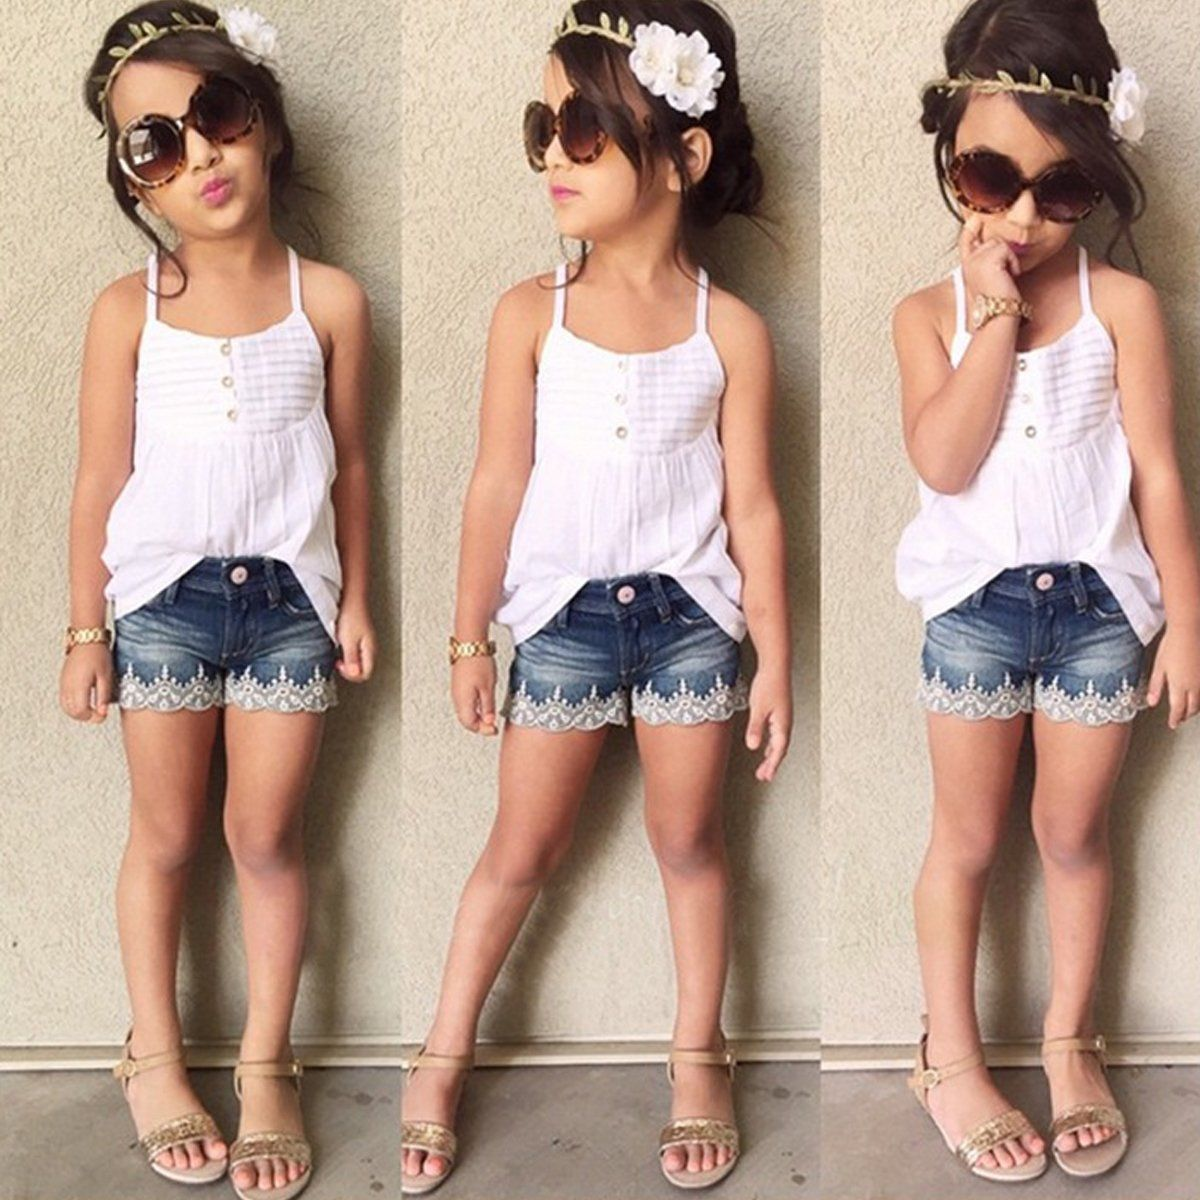 8427623da9f2  9.64 - 2Pcs Toddler Infant Girls Outfits Tank Top T-Shirt Dress+ ...